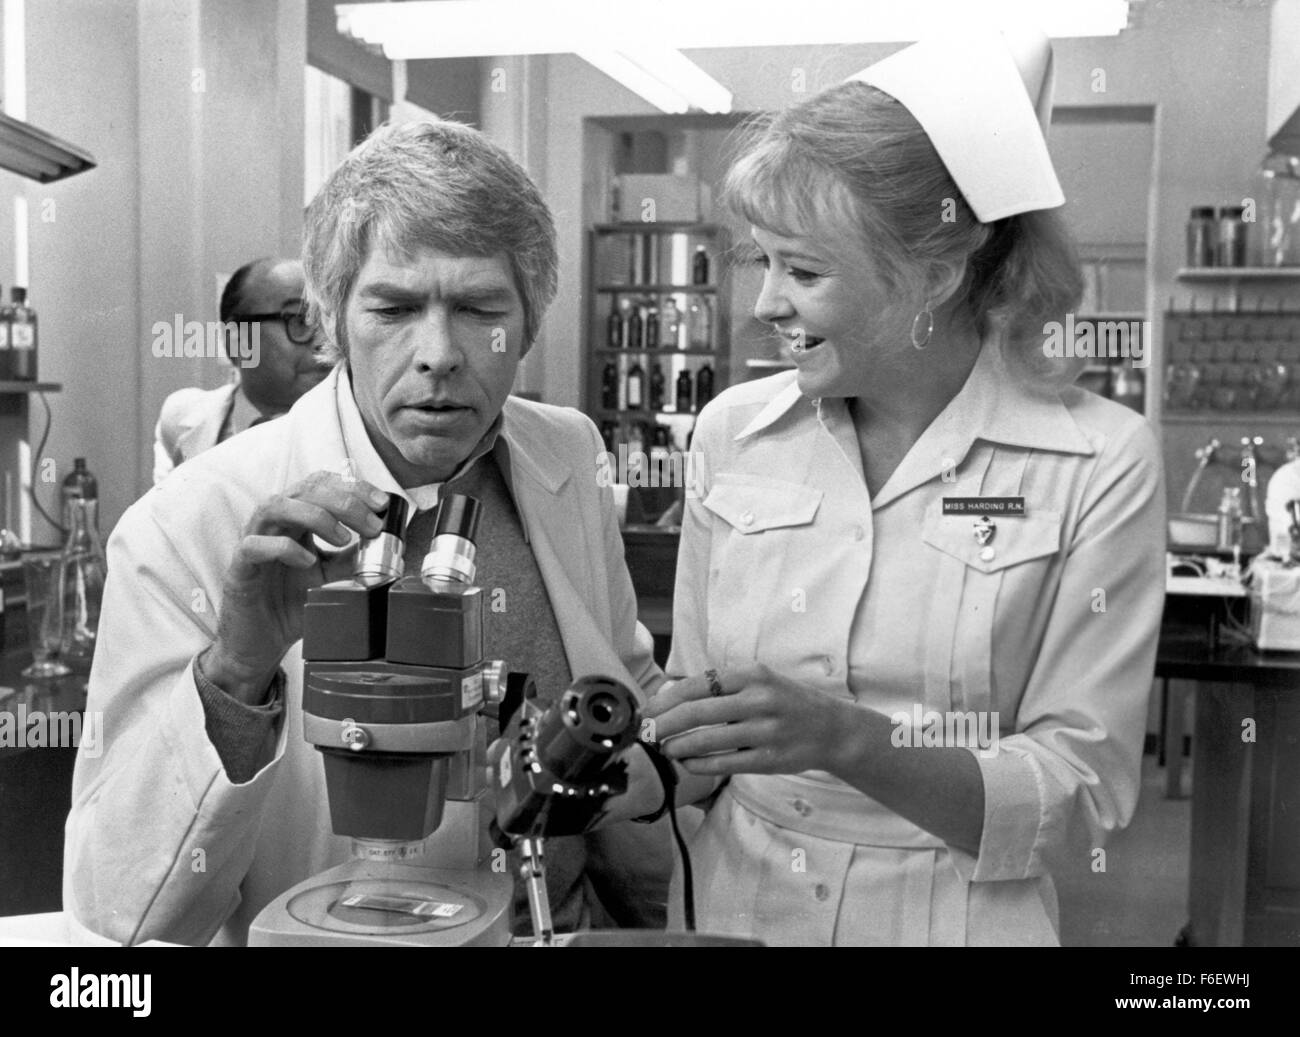 Mar 29, 1972; Boston, MS, USA; Actor JAMES COBURN as Dr. Peter Carey in 'The Carey Treatment'. Directed - Stock Image